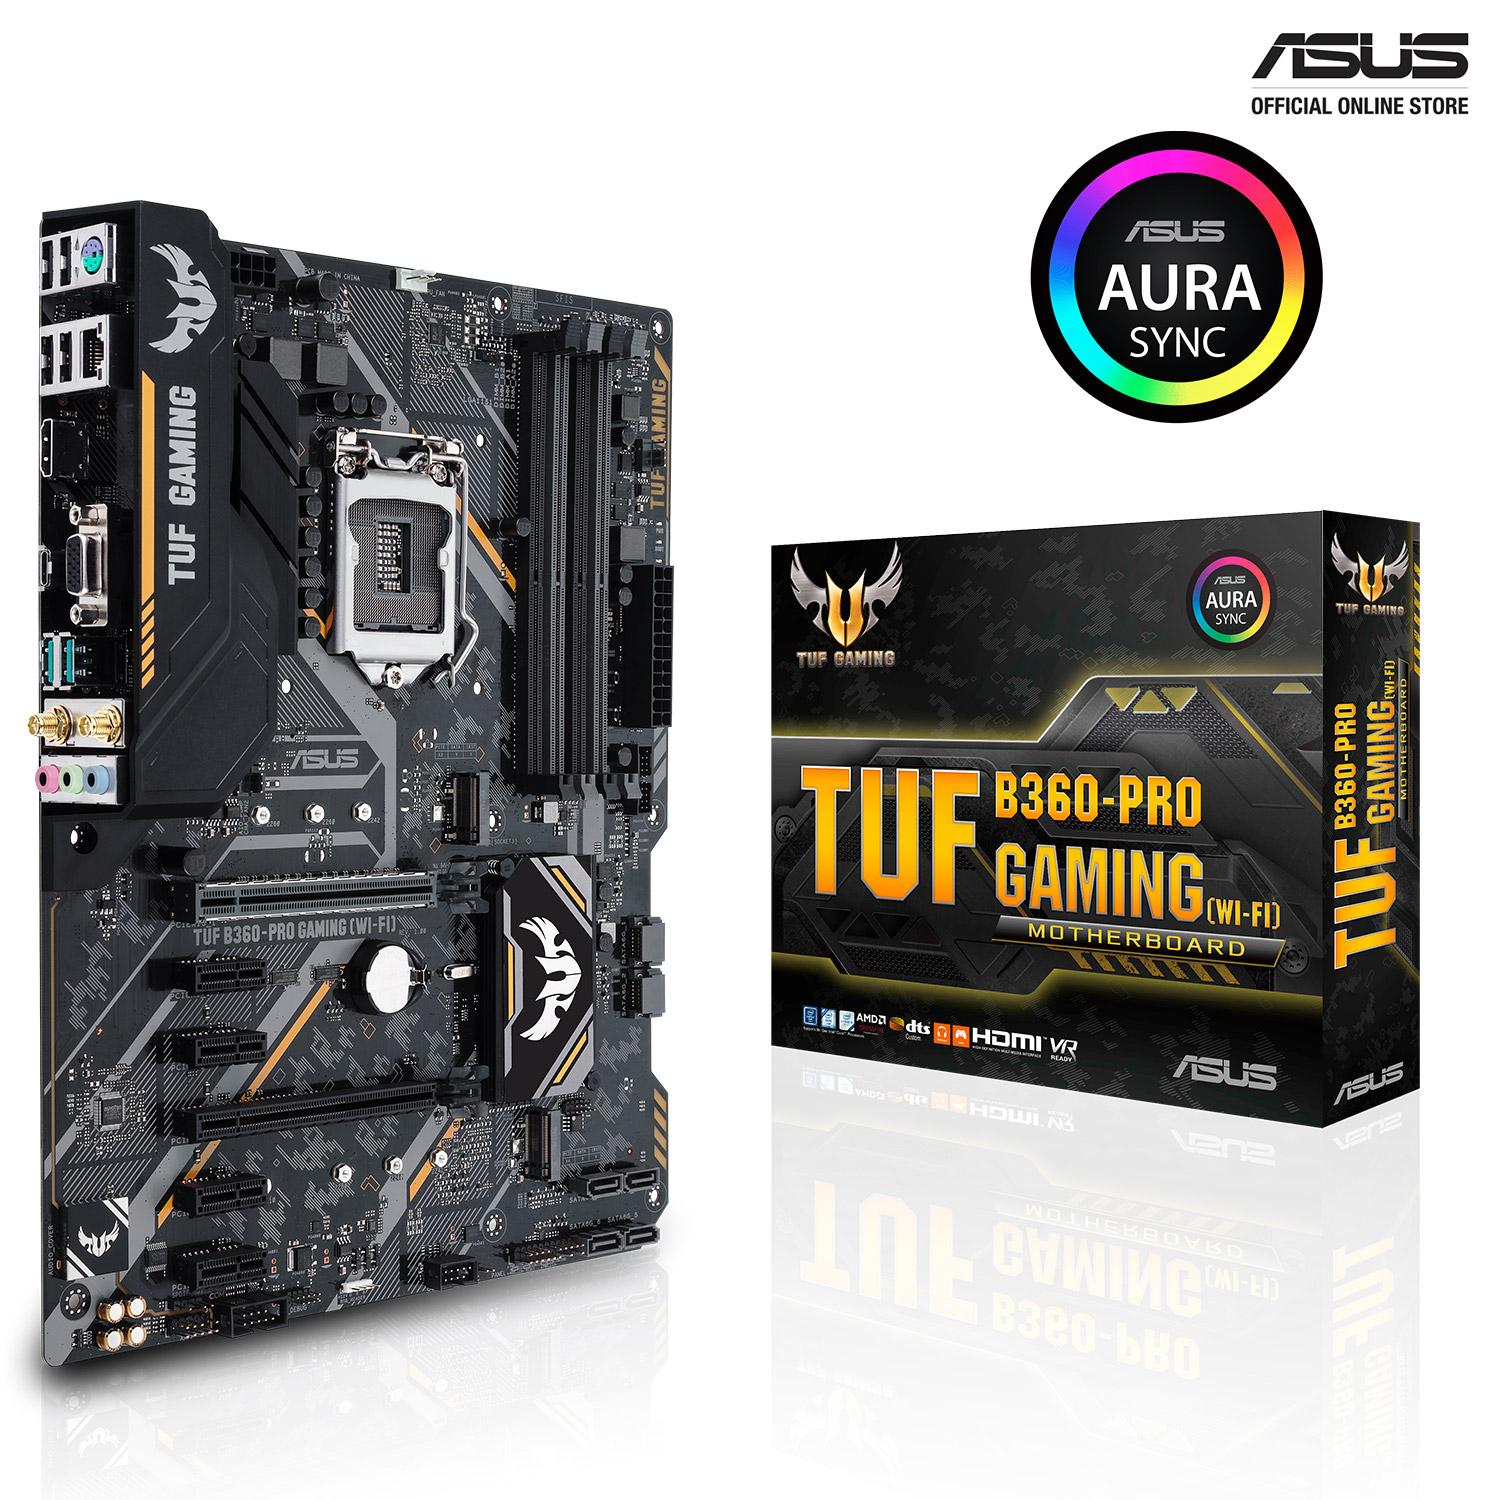 ASUS TUF B360-PRO GAMING(WIF-FI) Intel B360 ATX gaming motherboard with  Aura Sync RGB LED lighting, DDR4 2666MHz support, 32Gbps M 2, Intel Optane